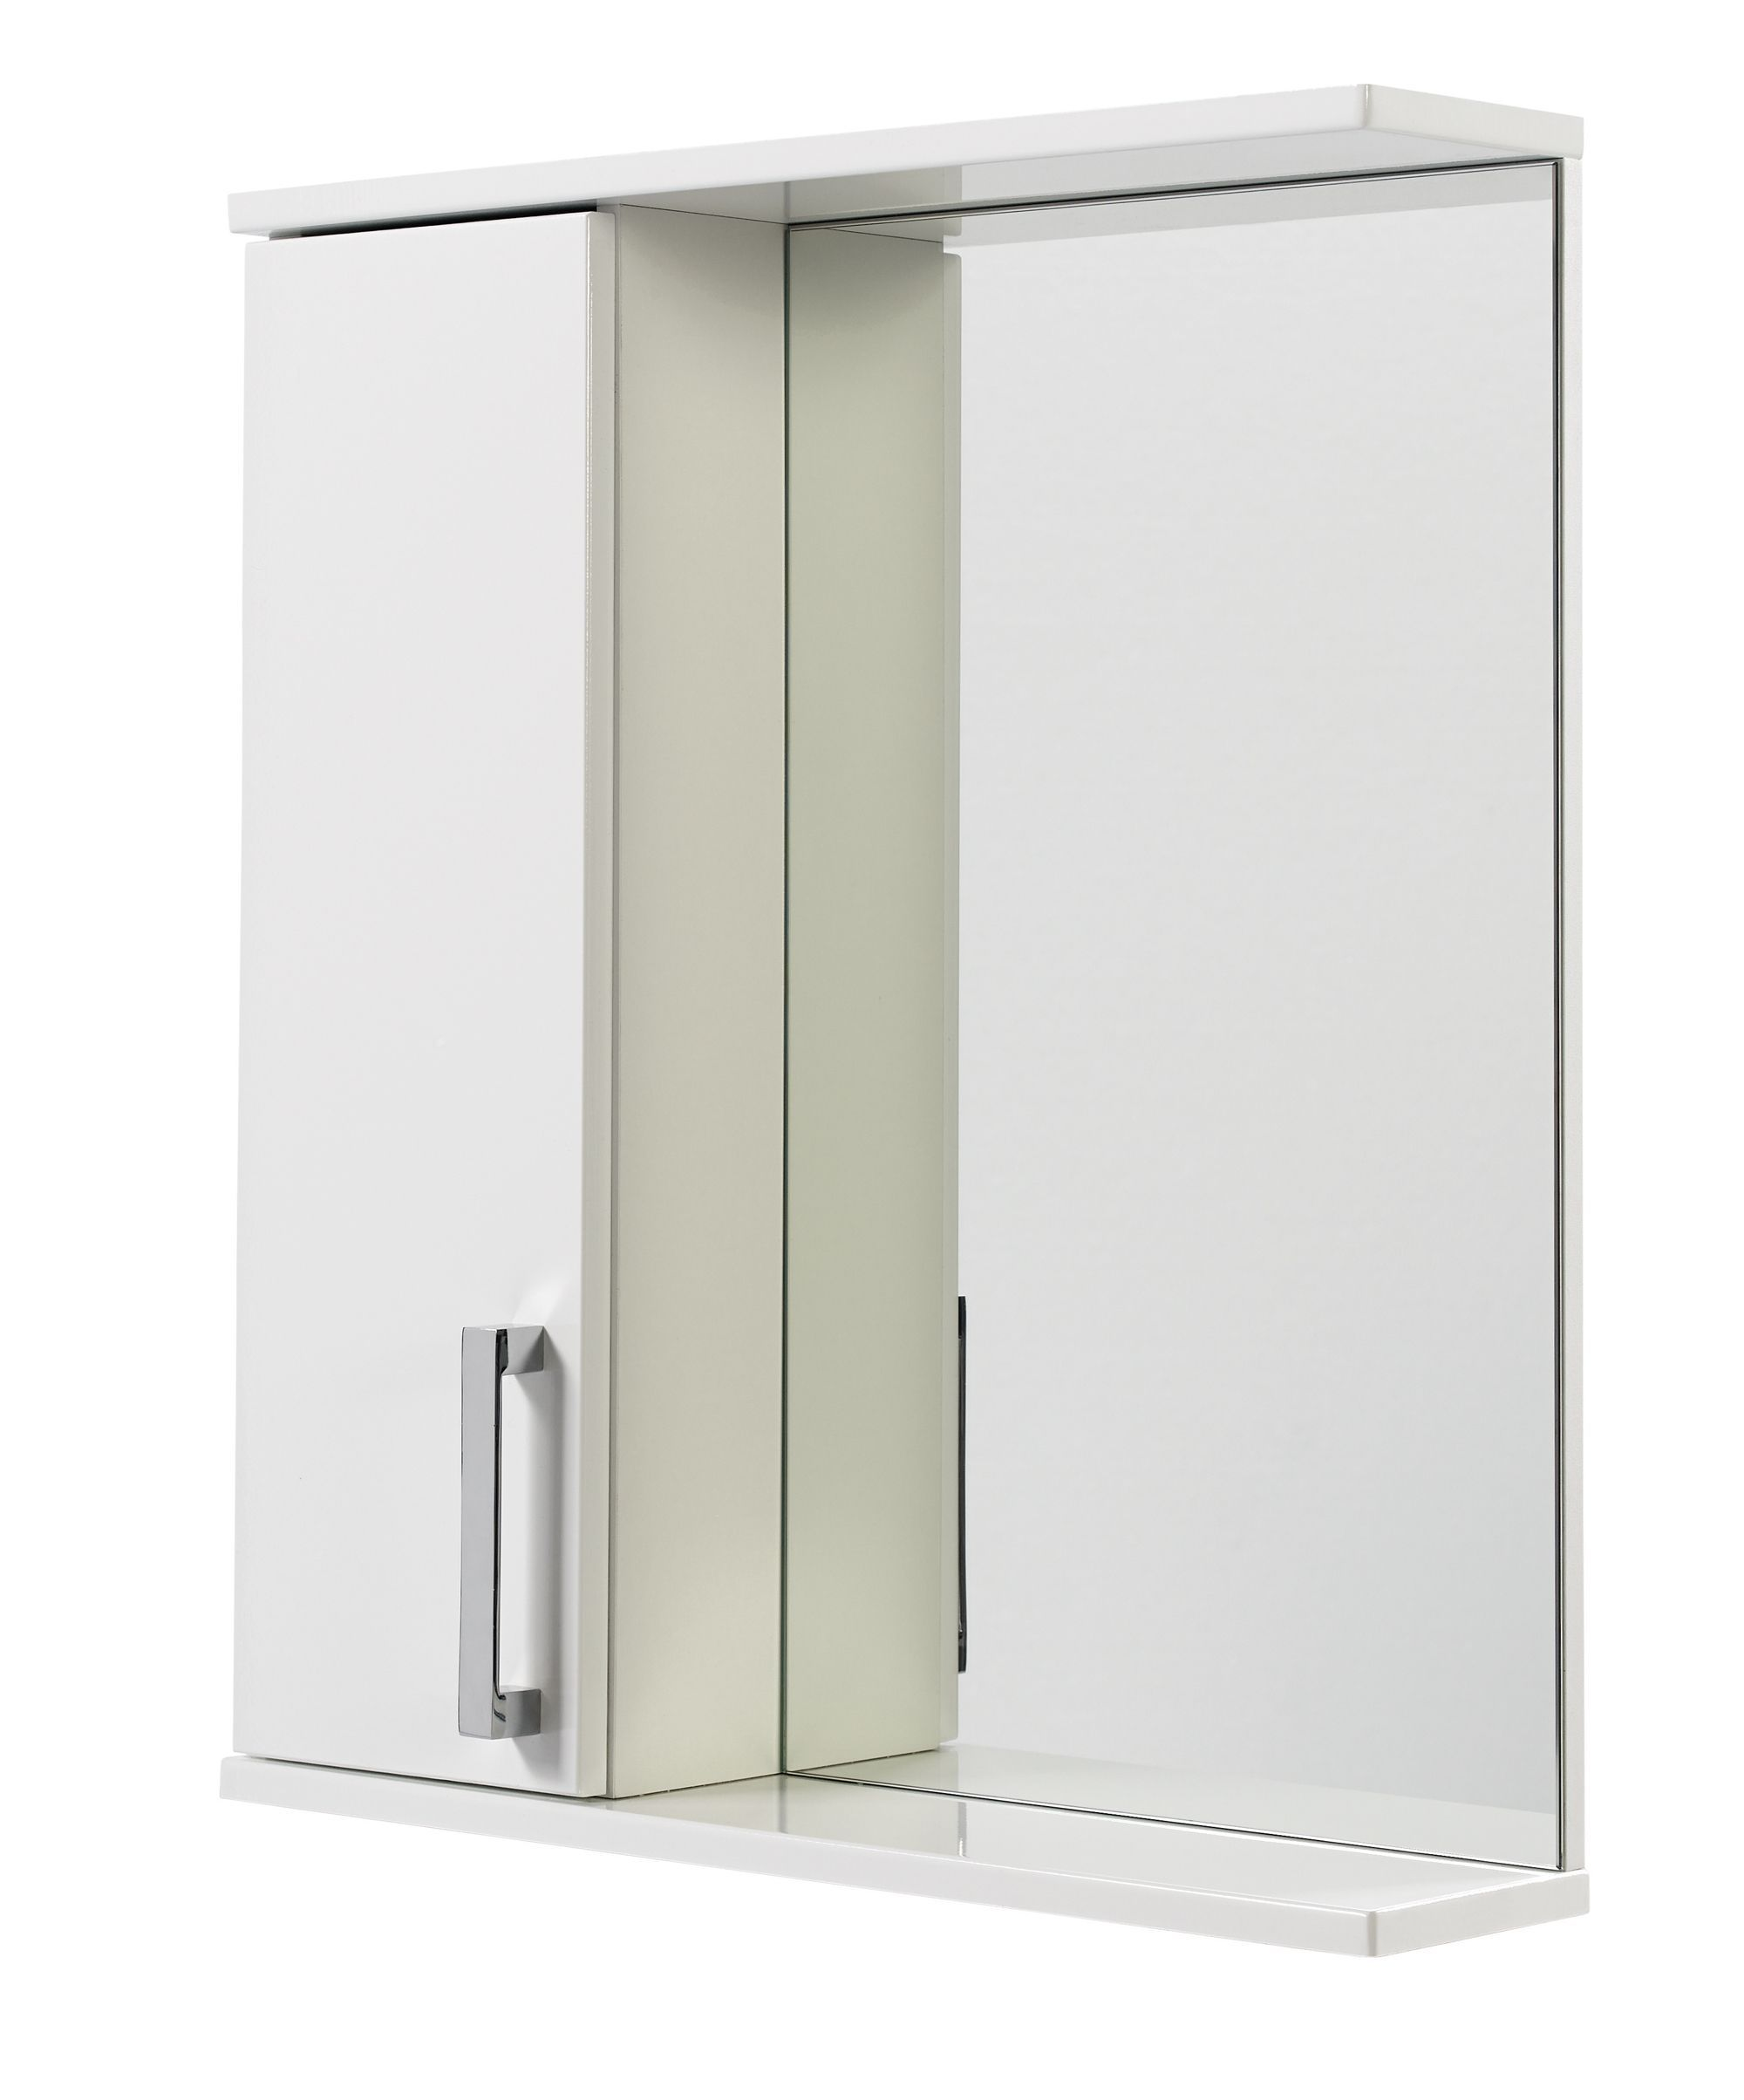 Ardenno Single Door White Gloss Mirror Cabinet | Mirror cabinets ...